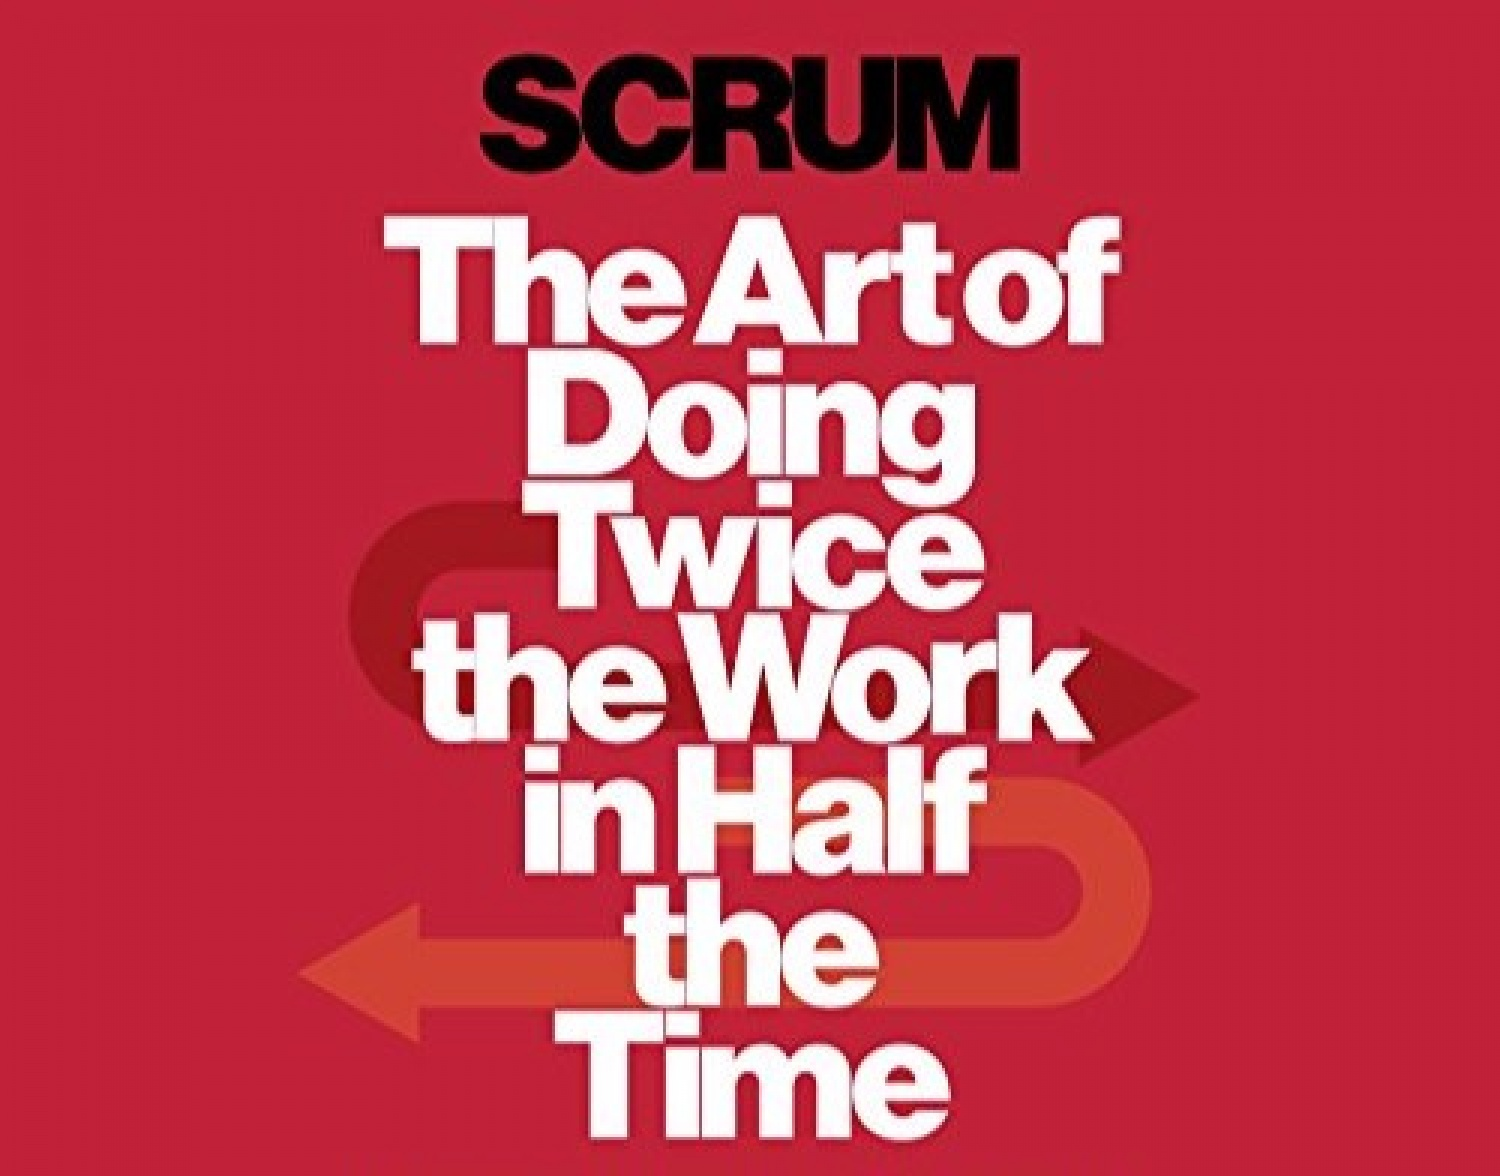 "<div style=""text-align: center;""><strong>Scrum (Unabridged)</strong></div>"